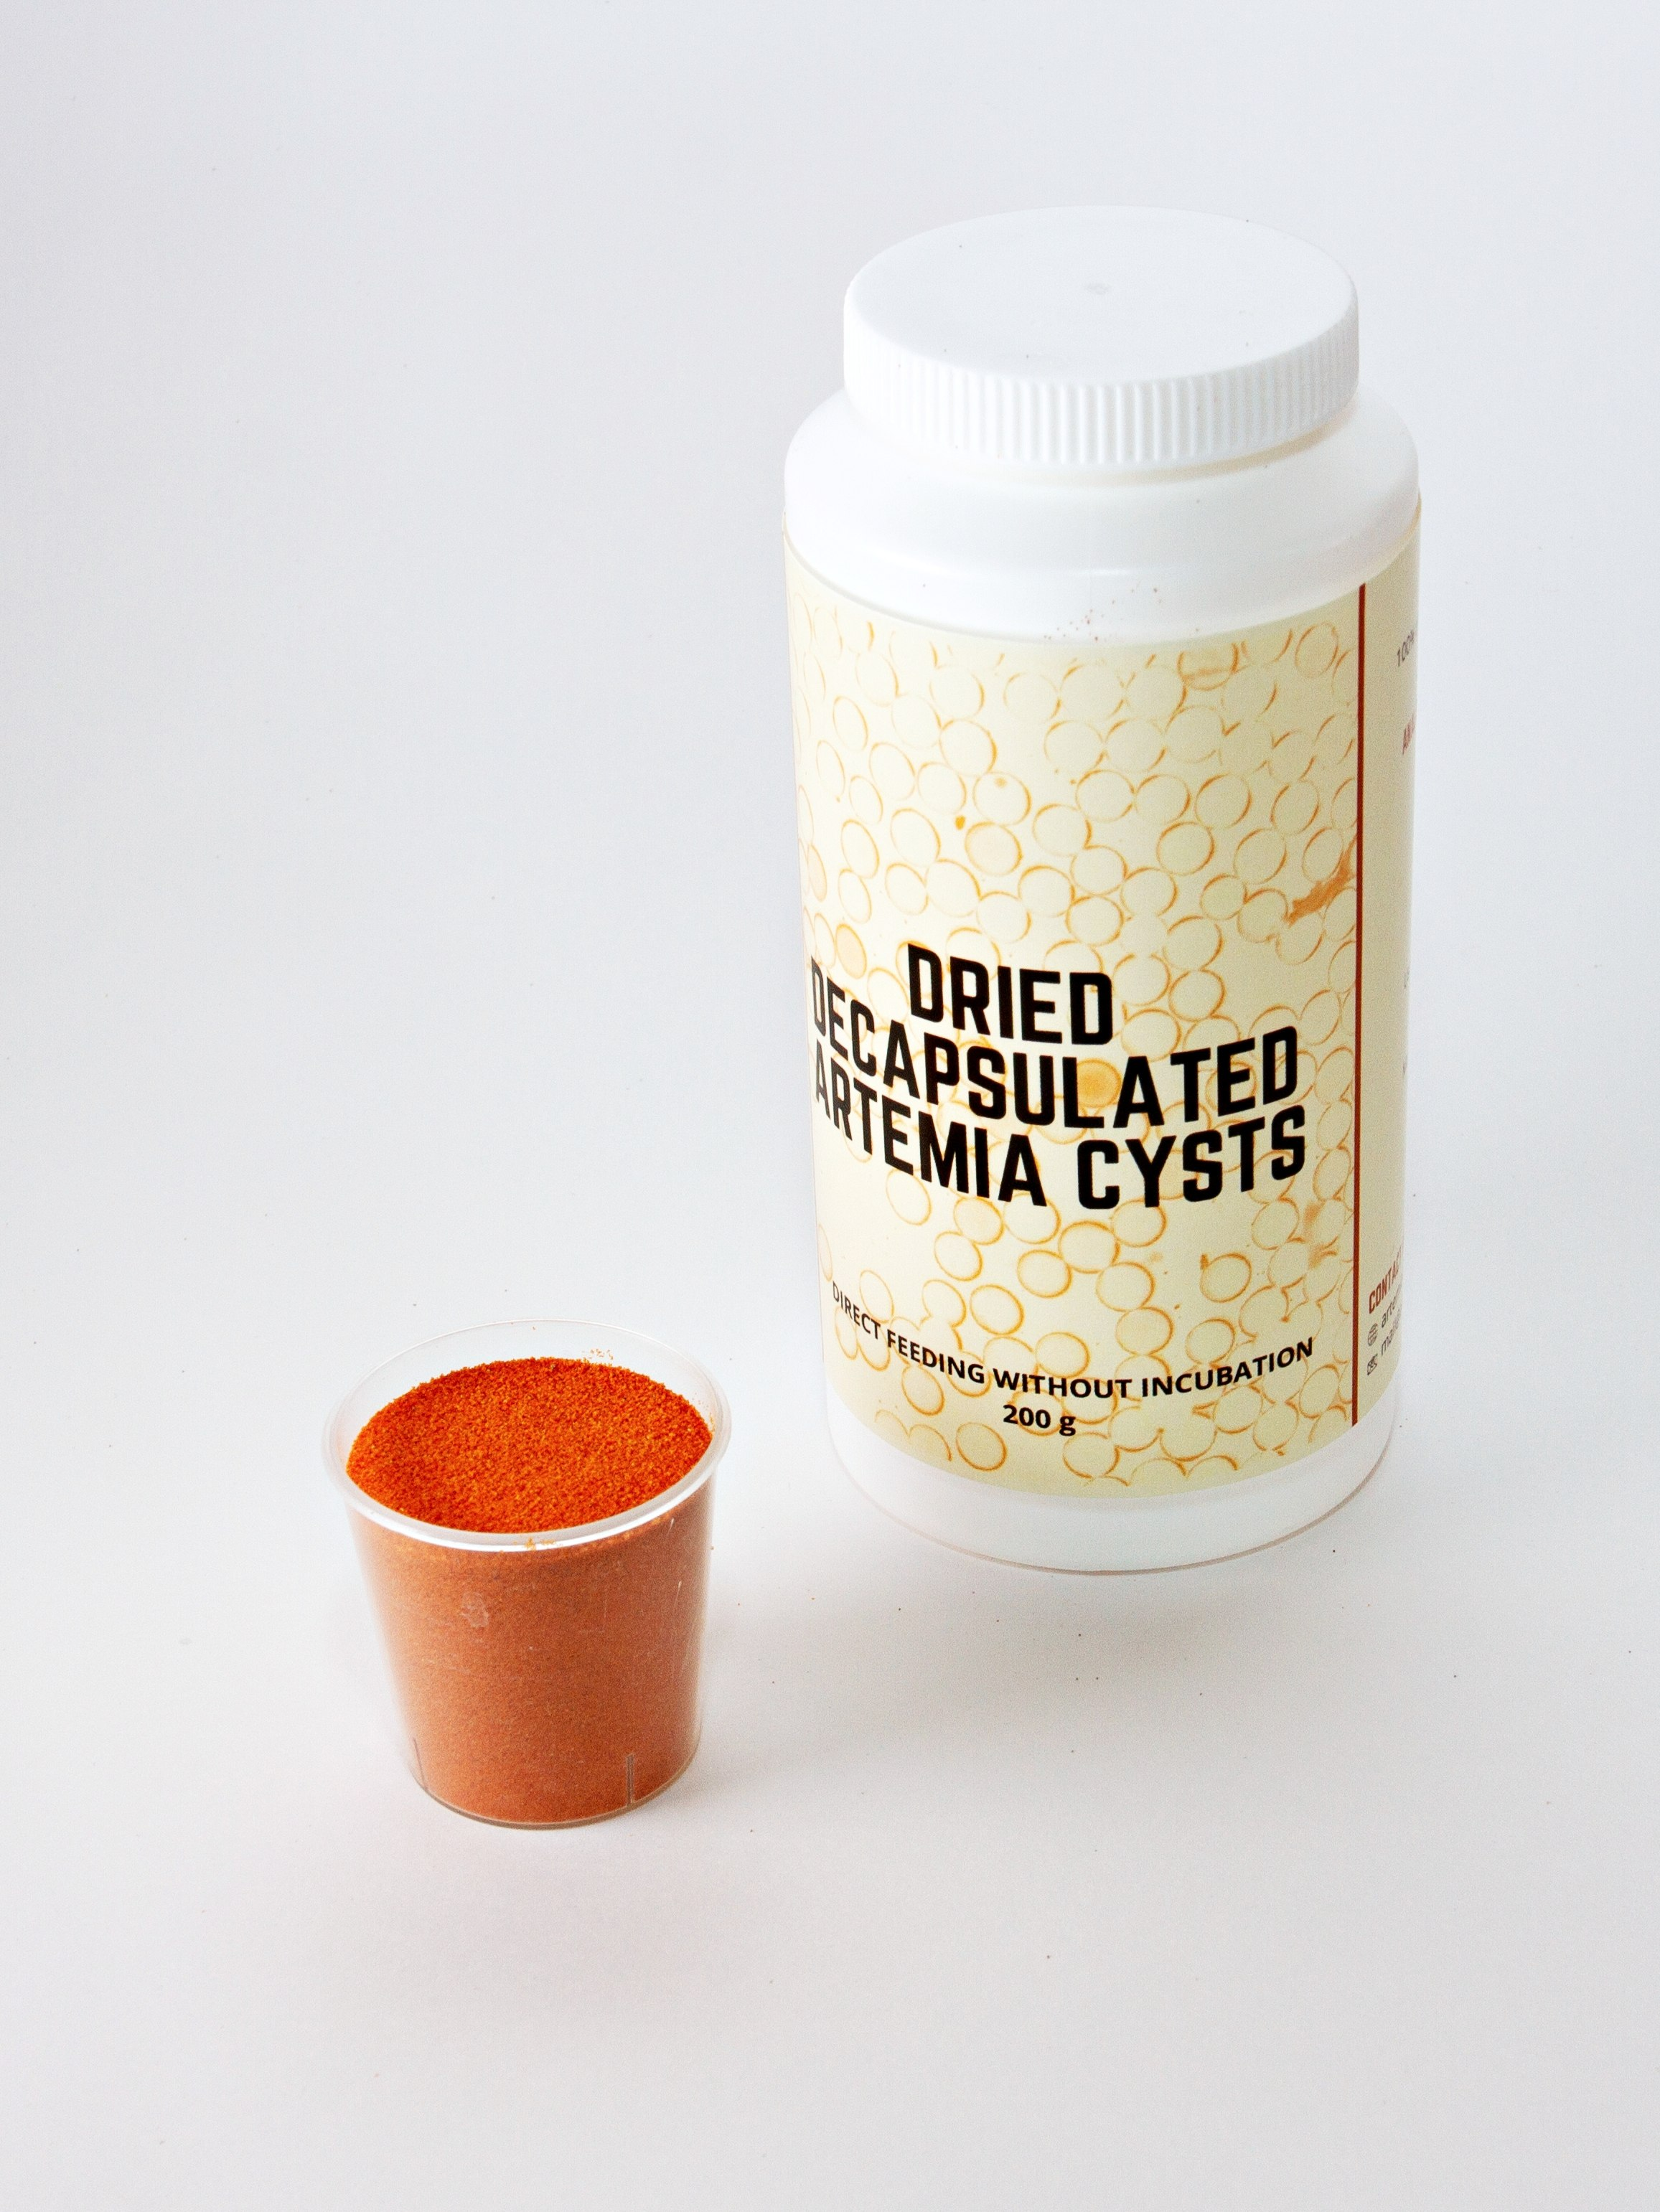 Dried Decapsulated Brine Shrimp Eggs - Direct Feeding Without Incubation 60 g